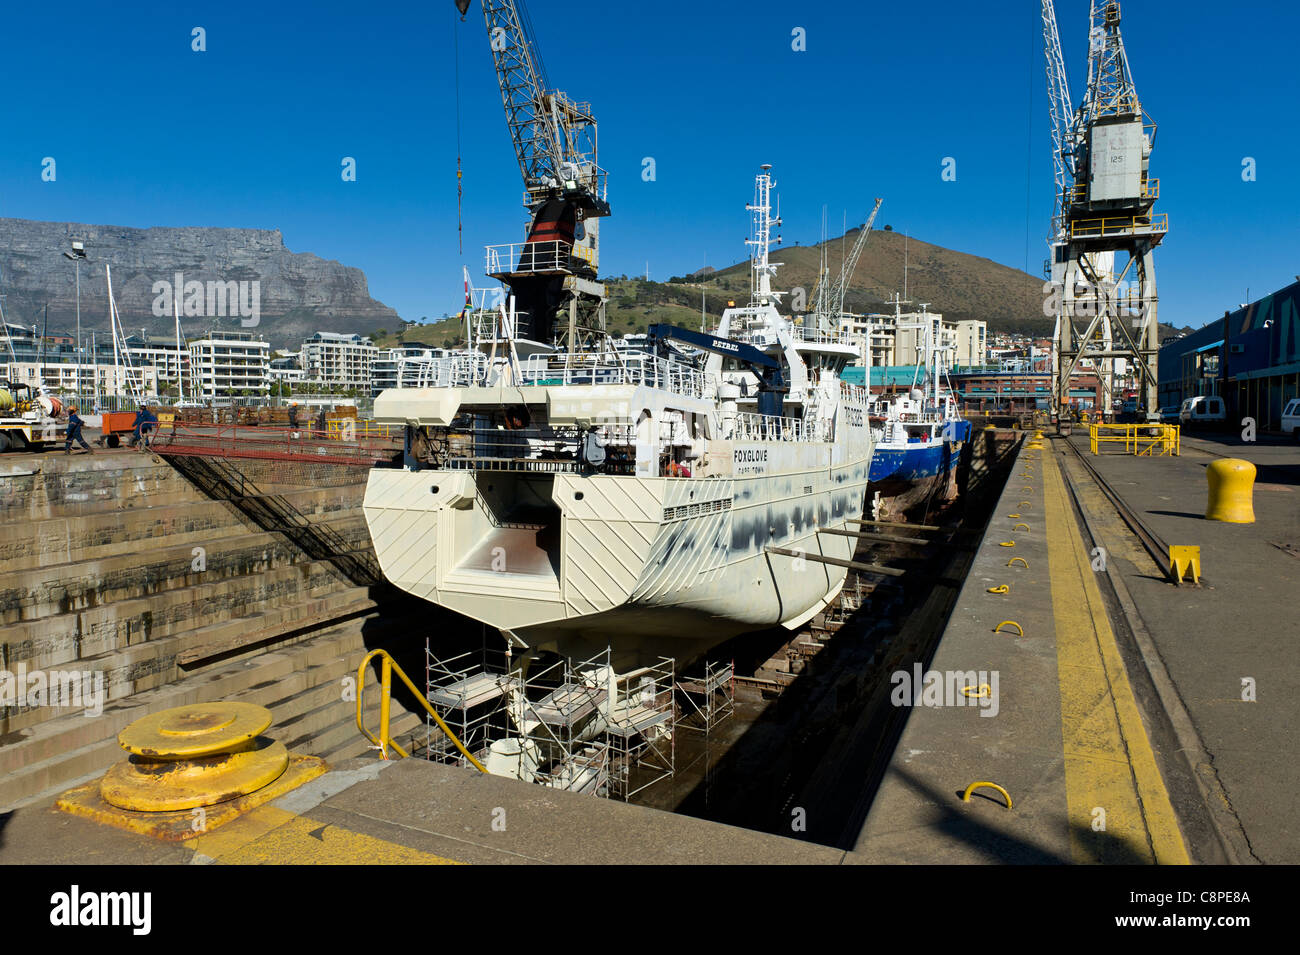 Trawler in a dry dock in Cape Town South Africa Stock Photo